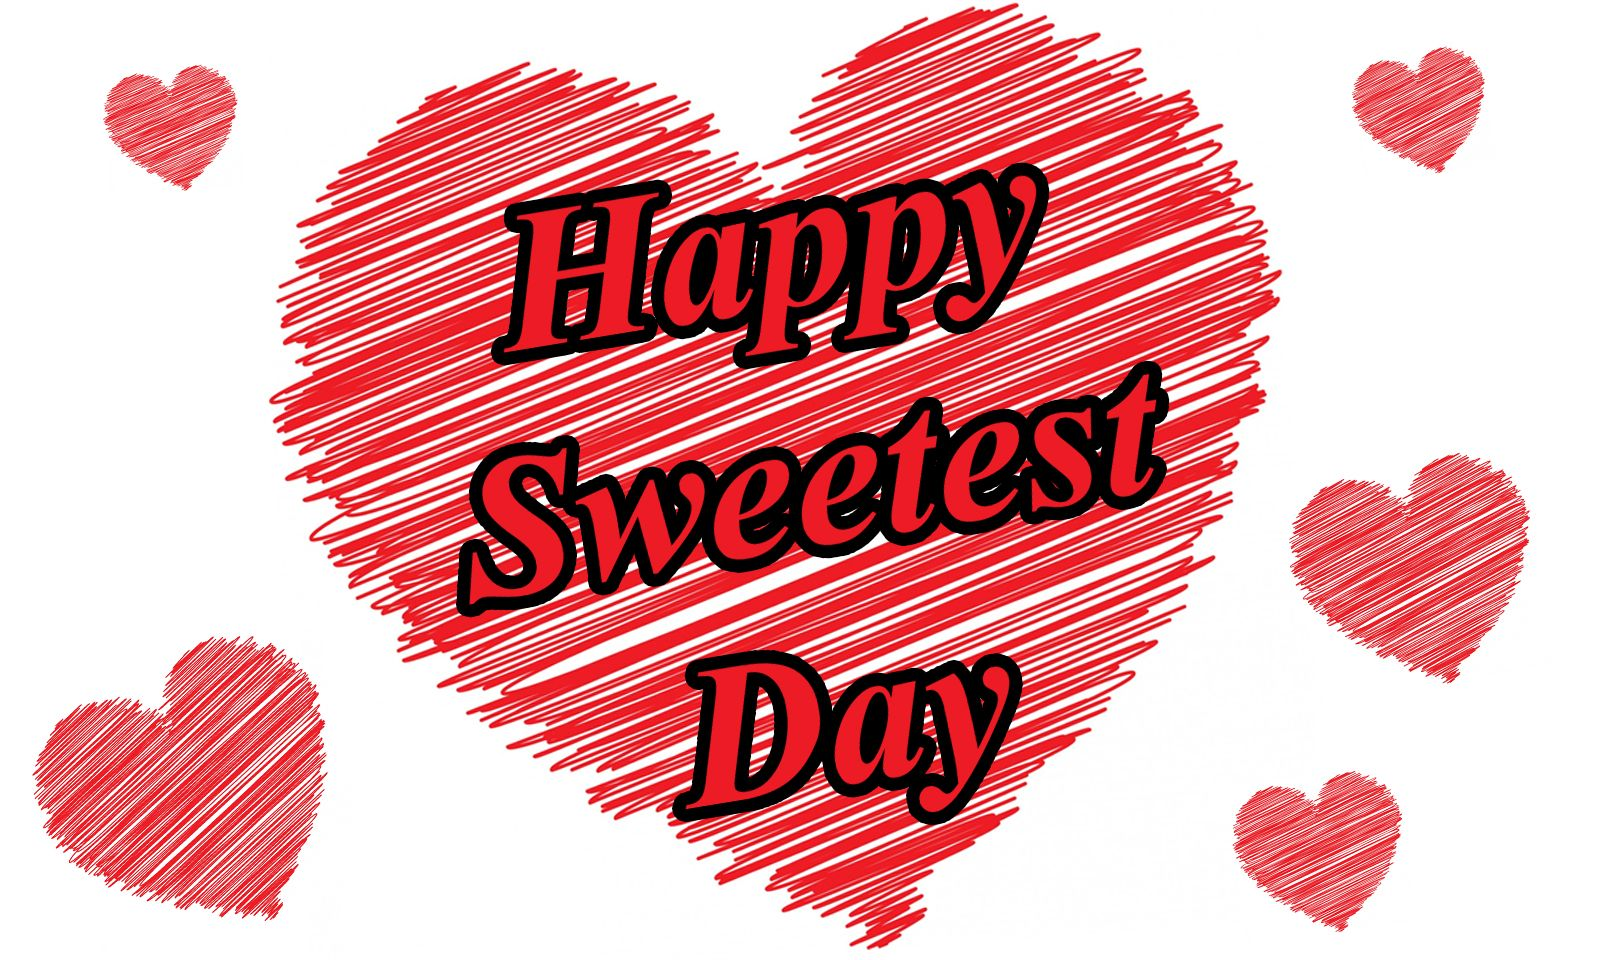 Happy Sweetest Day Wishes Greeting Card Free Ecard Image Picture